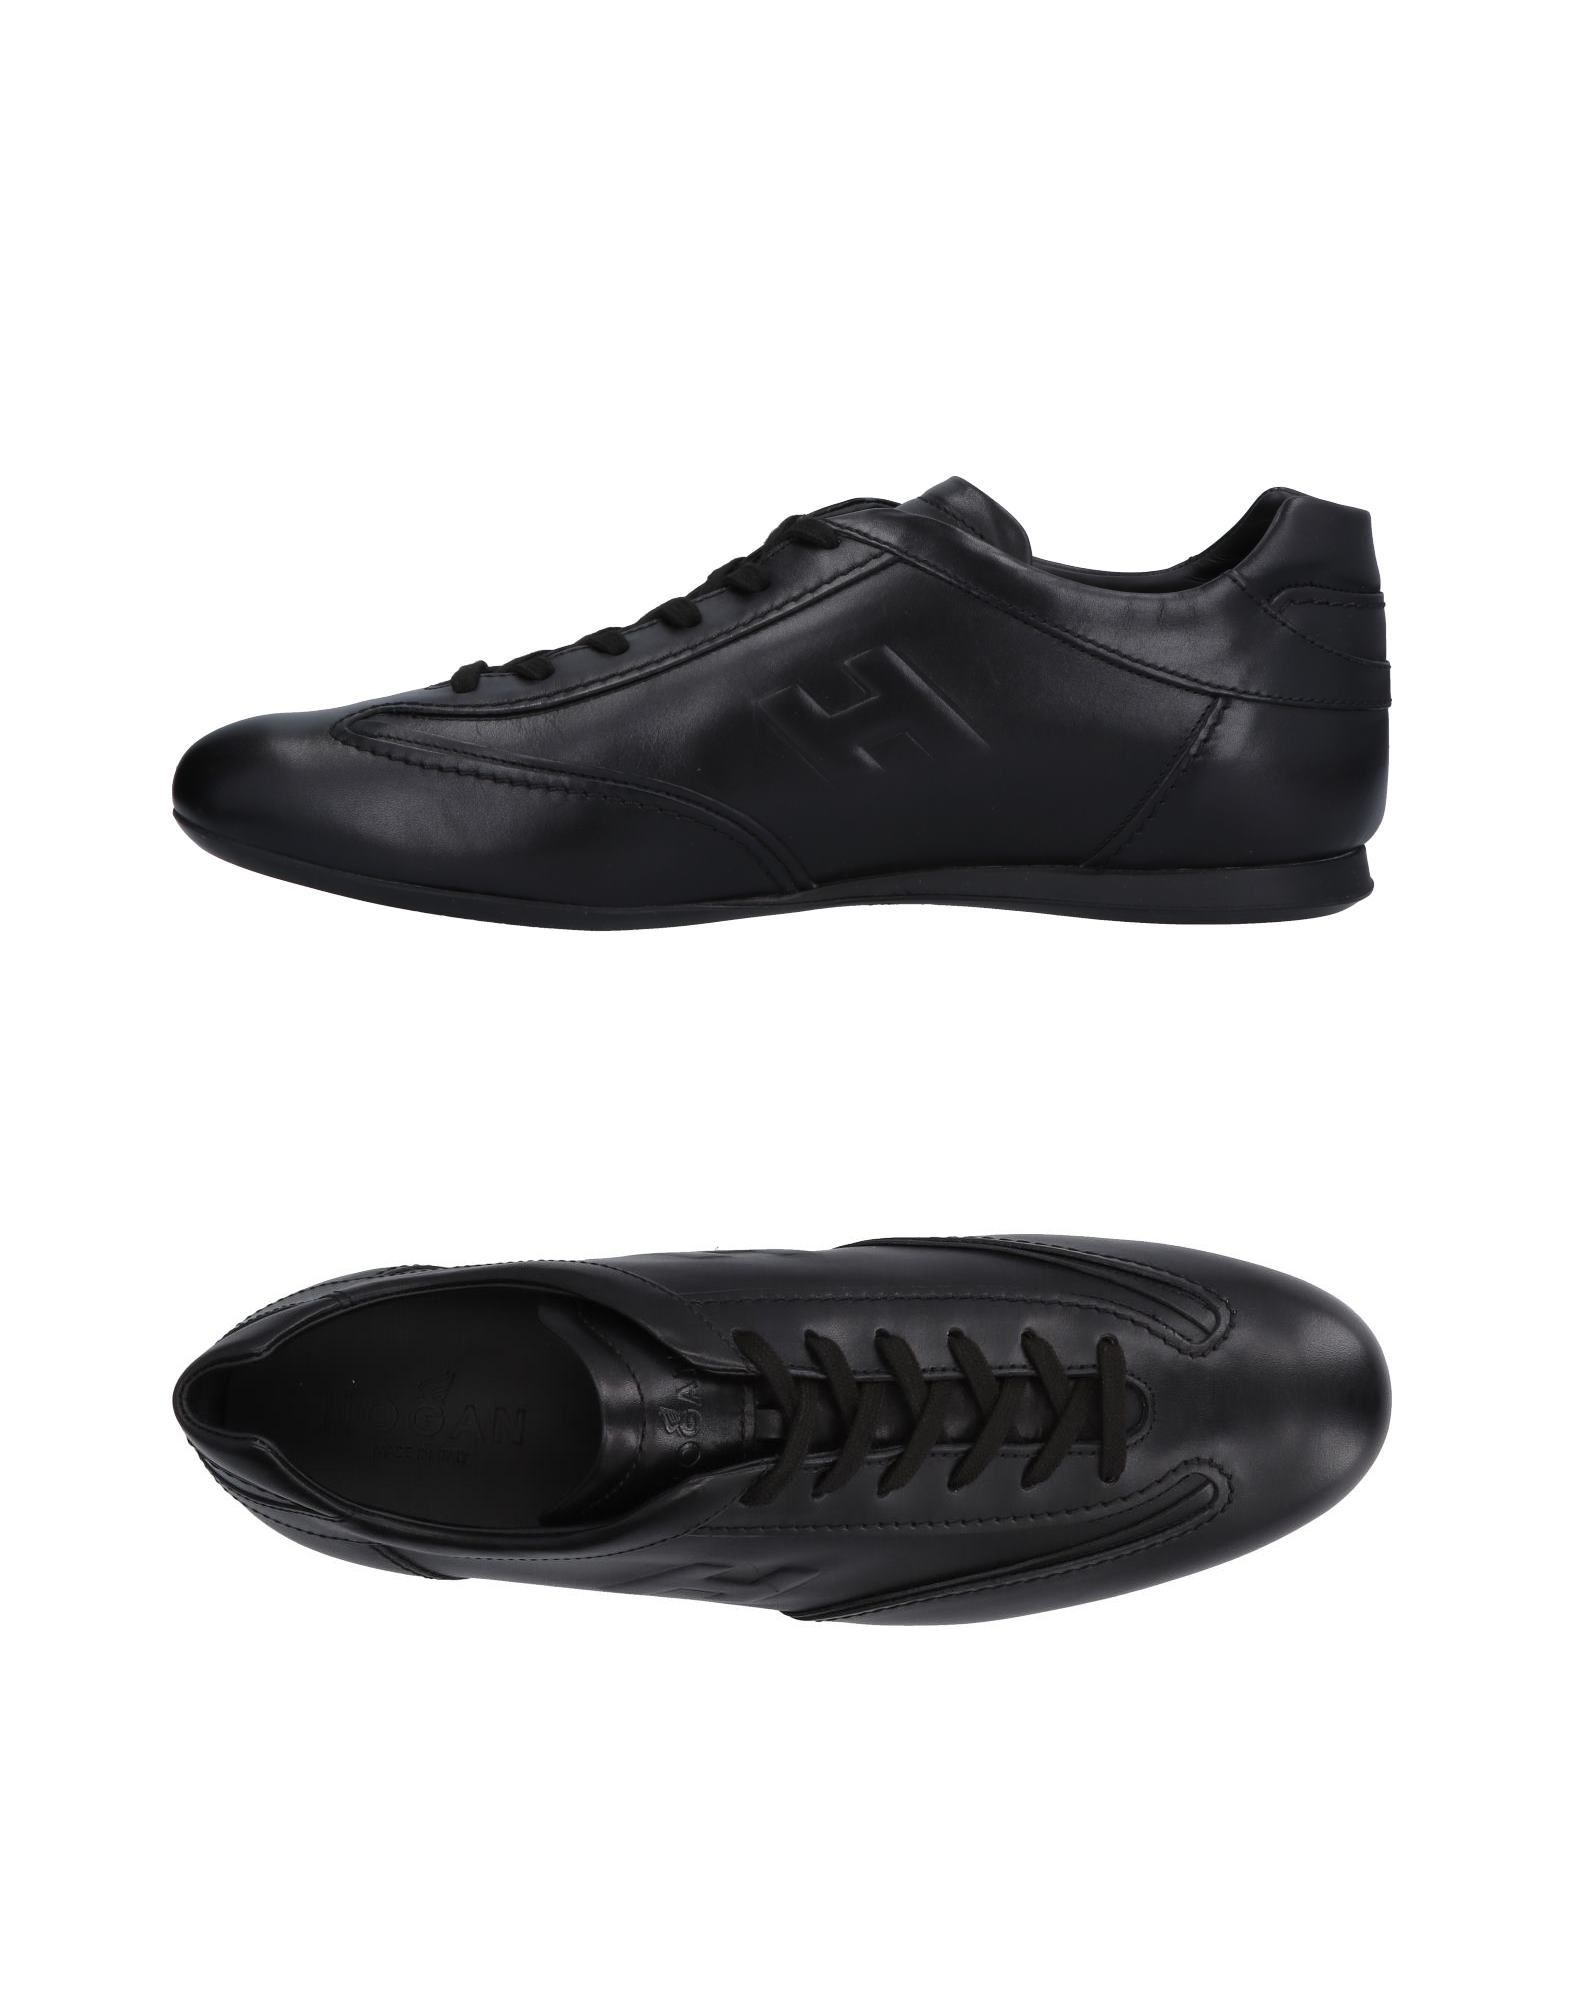 Hogan Sneakers - Men Hogan Sneakers online on    United Kingdom - 11487452WK 6e4d7e